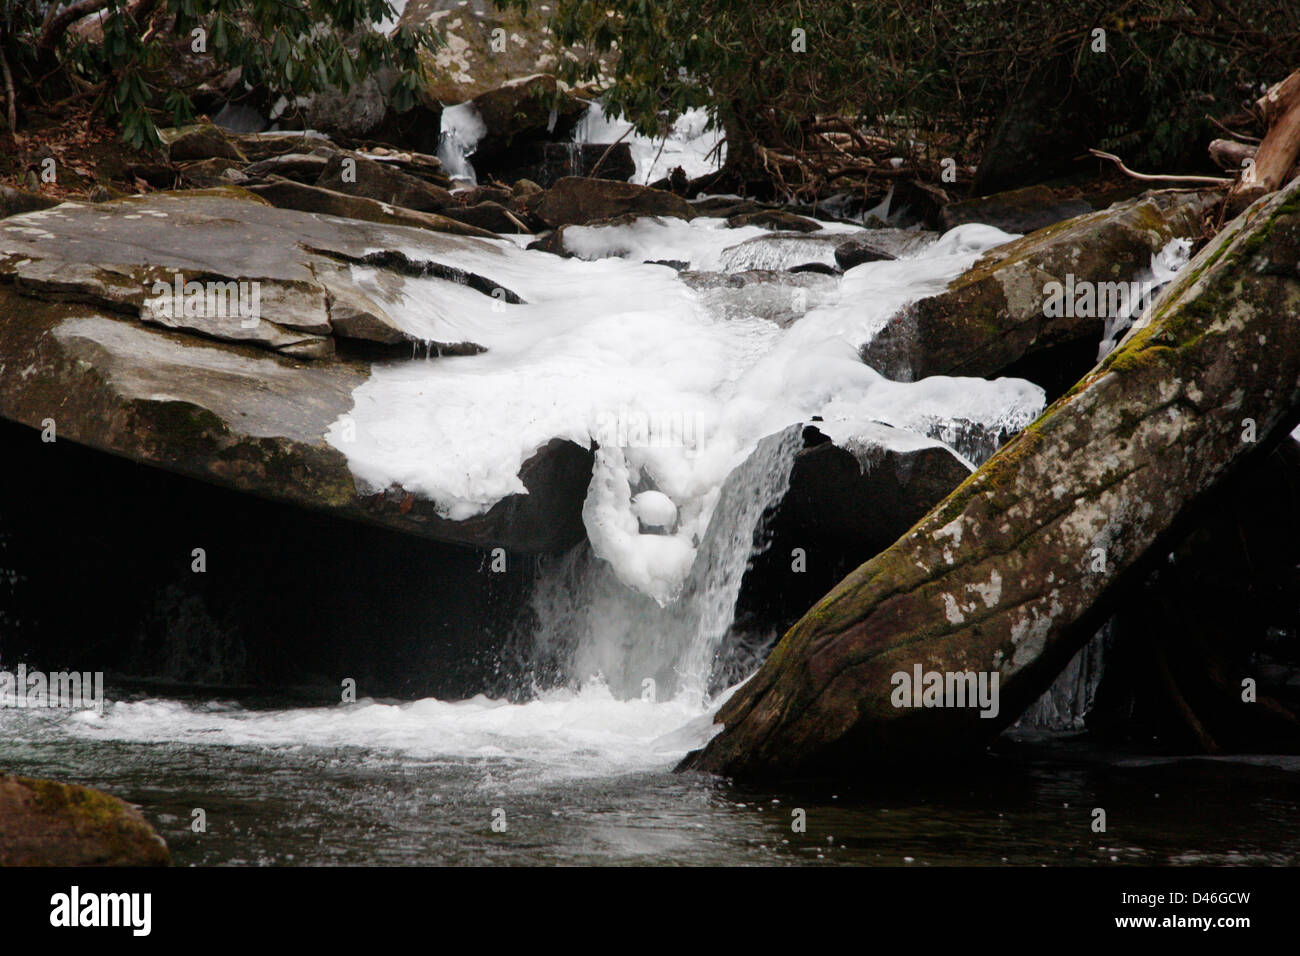 A winter abstract of ice formed on a rocky mountain creek. - Stock Image